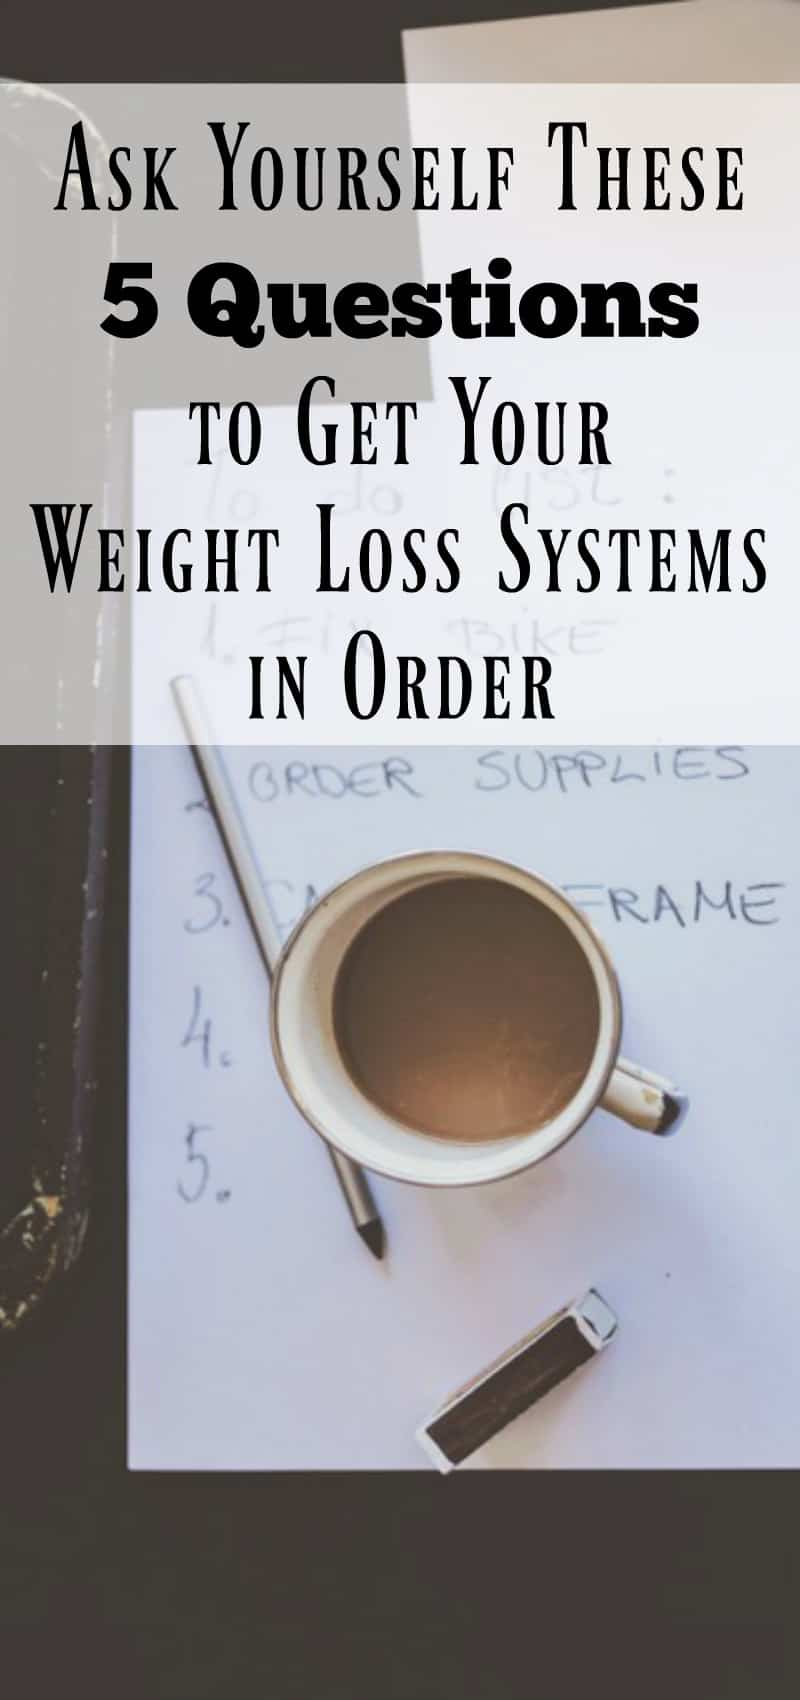 Ask Yourself These 5 Questions to Get Your Weight Loss Systems in Order